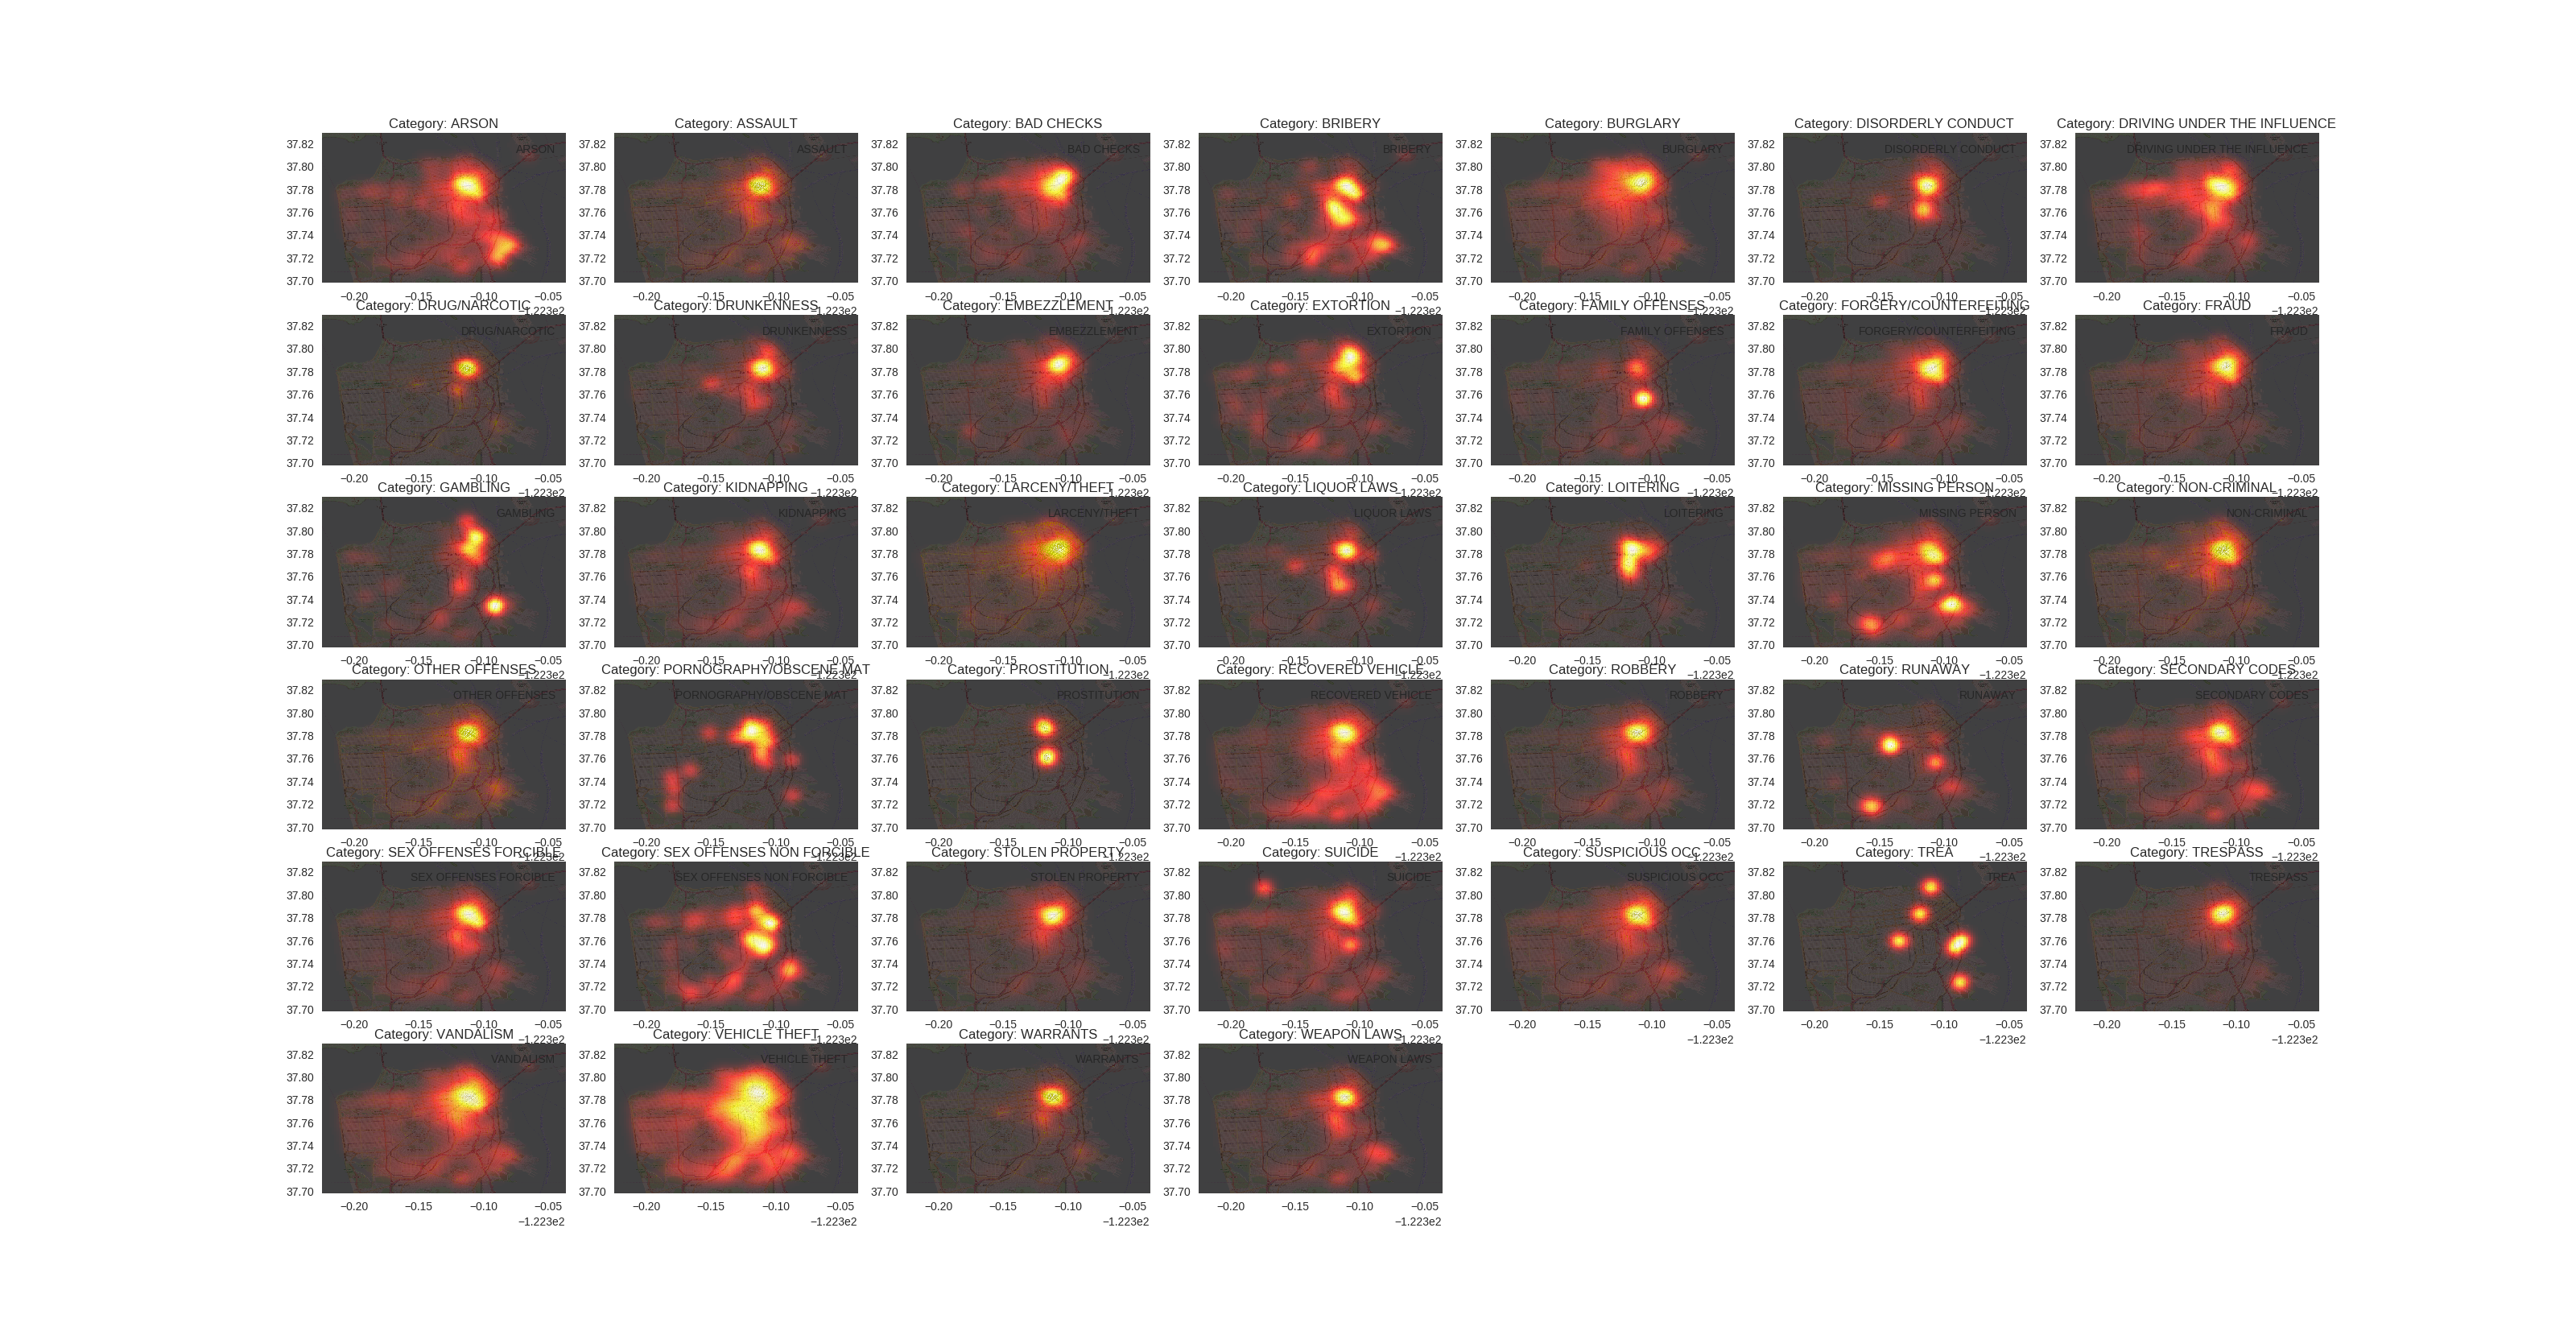 Map plot for a specific category with Kernel Density as Heatmap